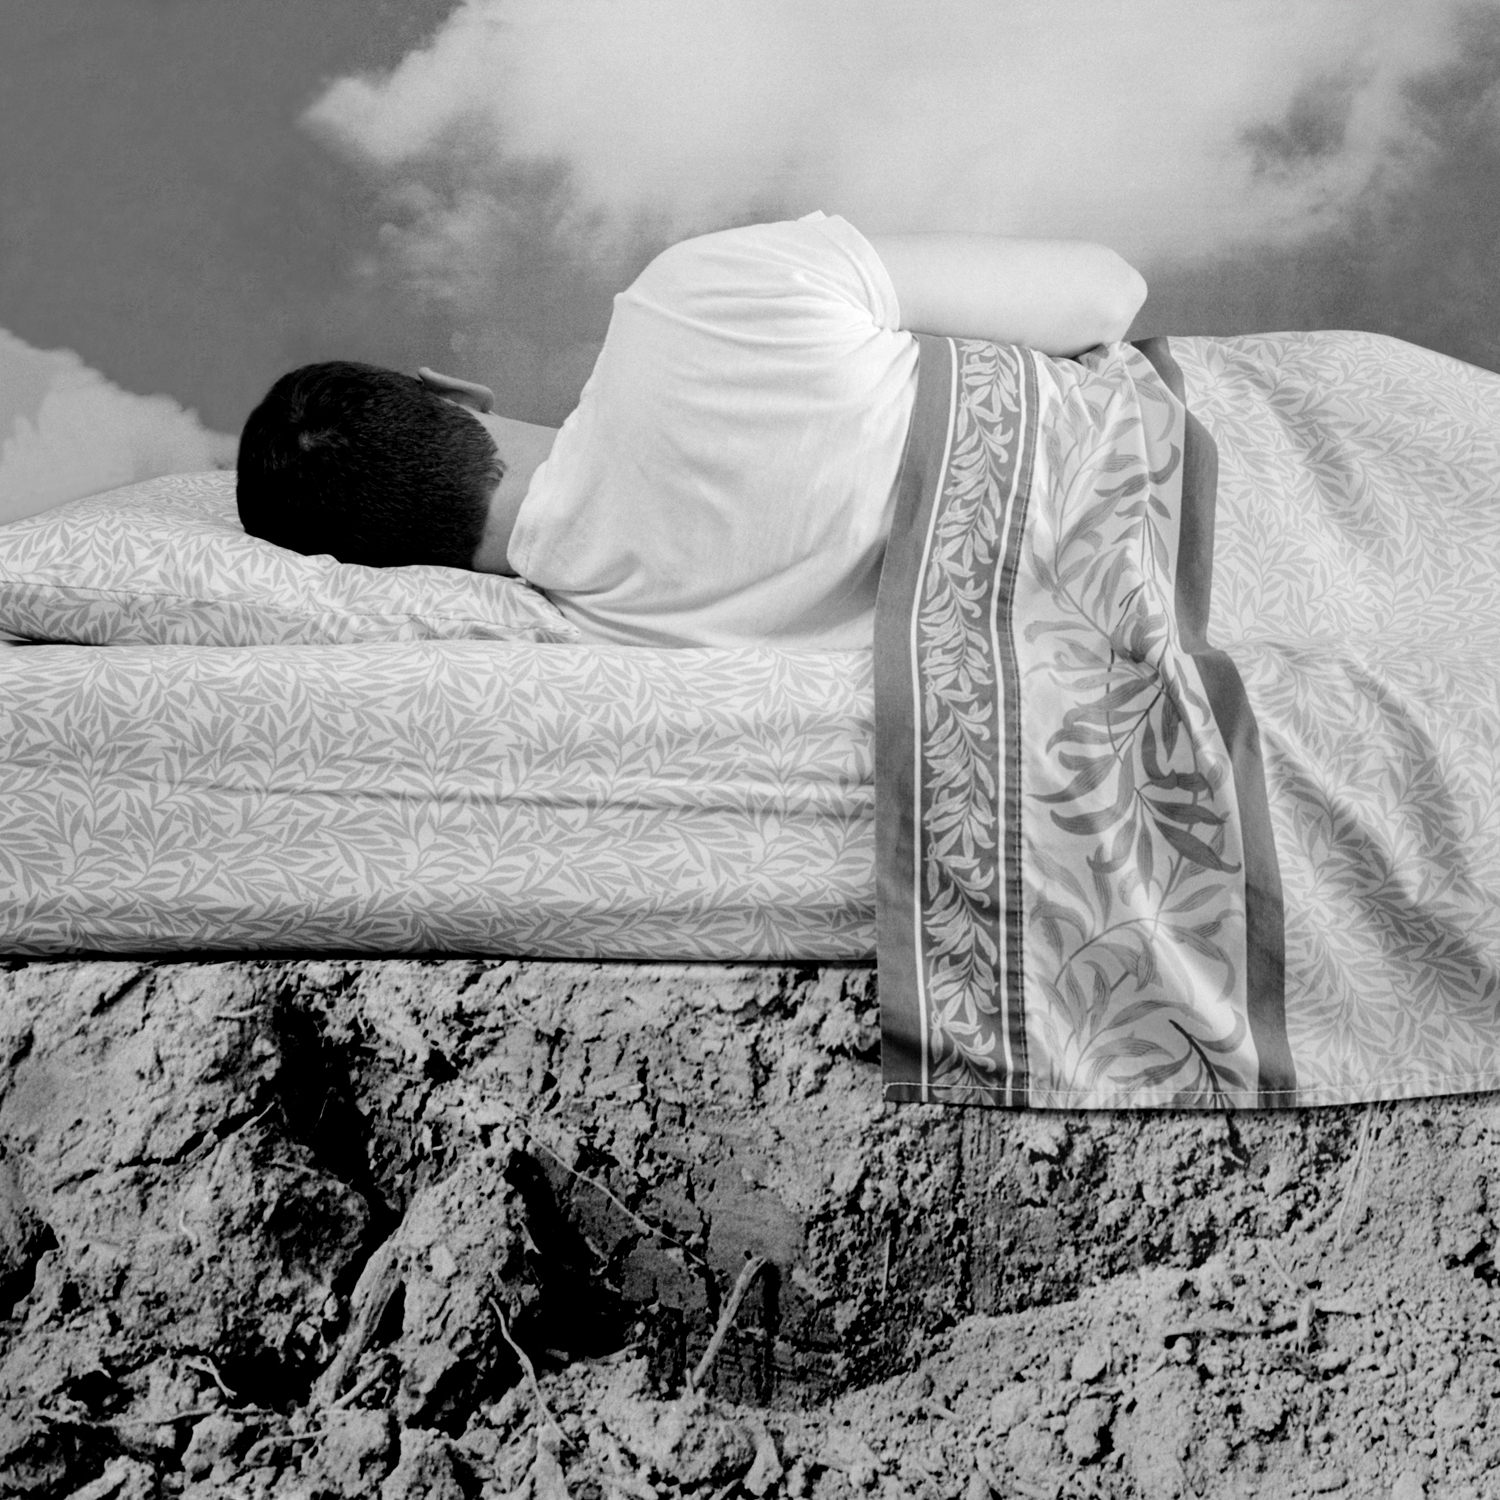 Bed, 2005, archival pigment print on paper